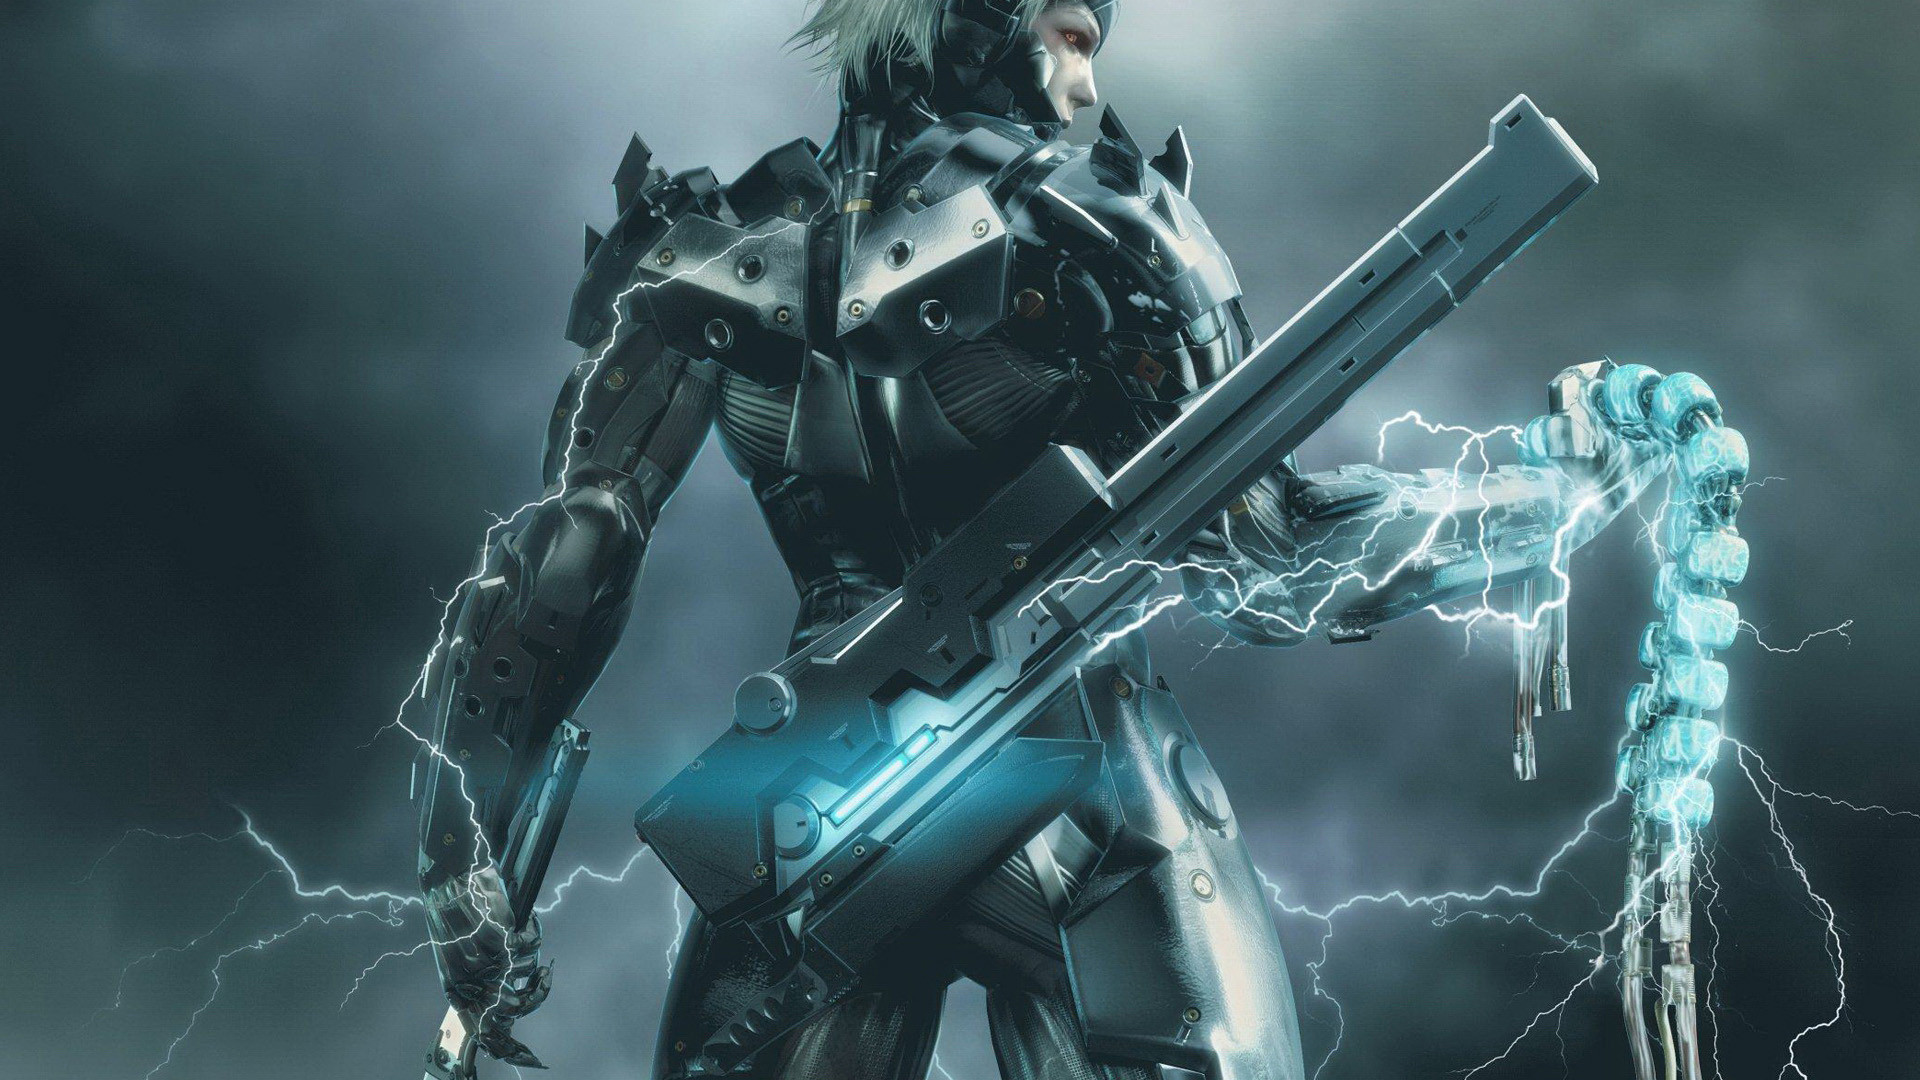 1920x1080 ... 1920 × 1080 in Review: Metal Gear Rising Revengeance